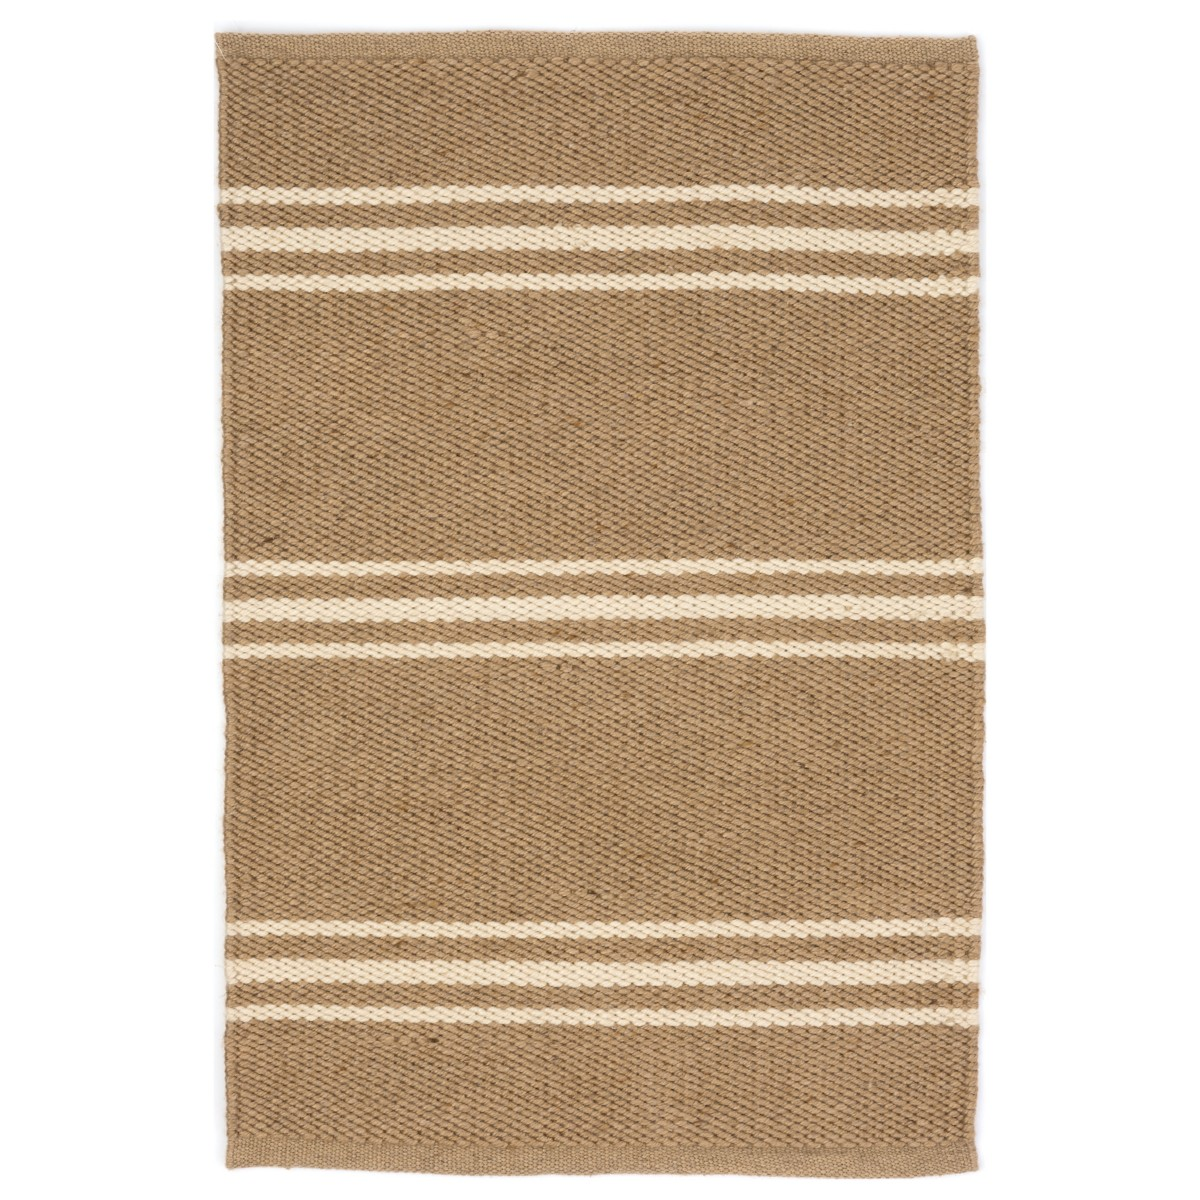 Lexington Indoor/Outdoor Rug - Camel and Ivory